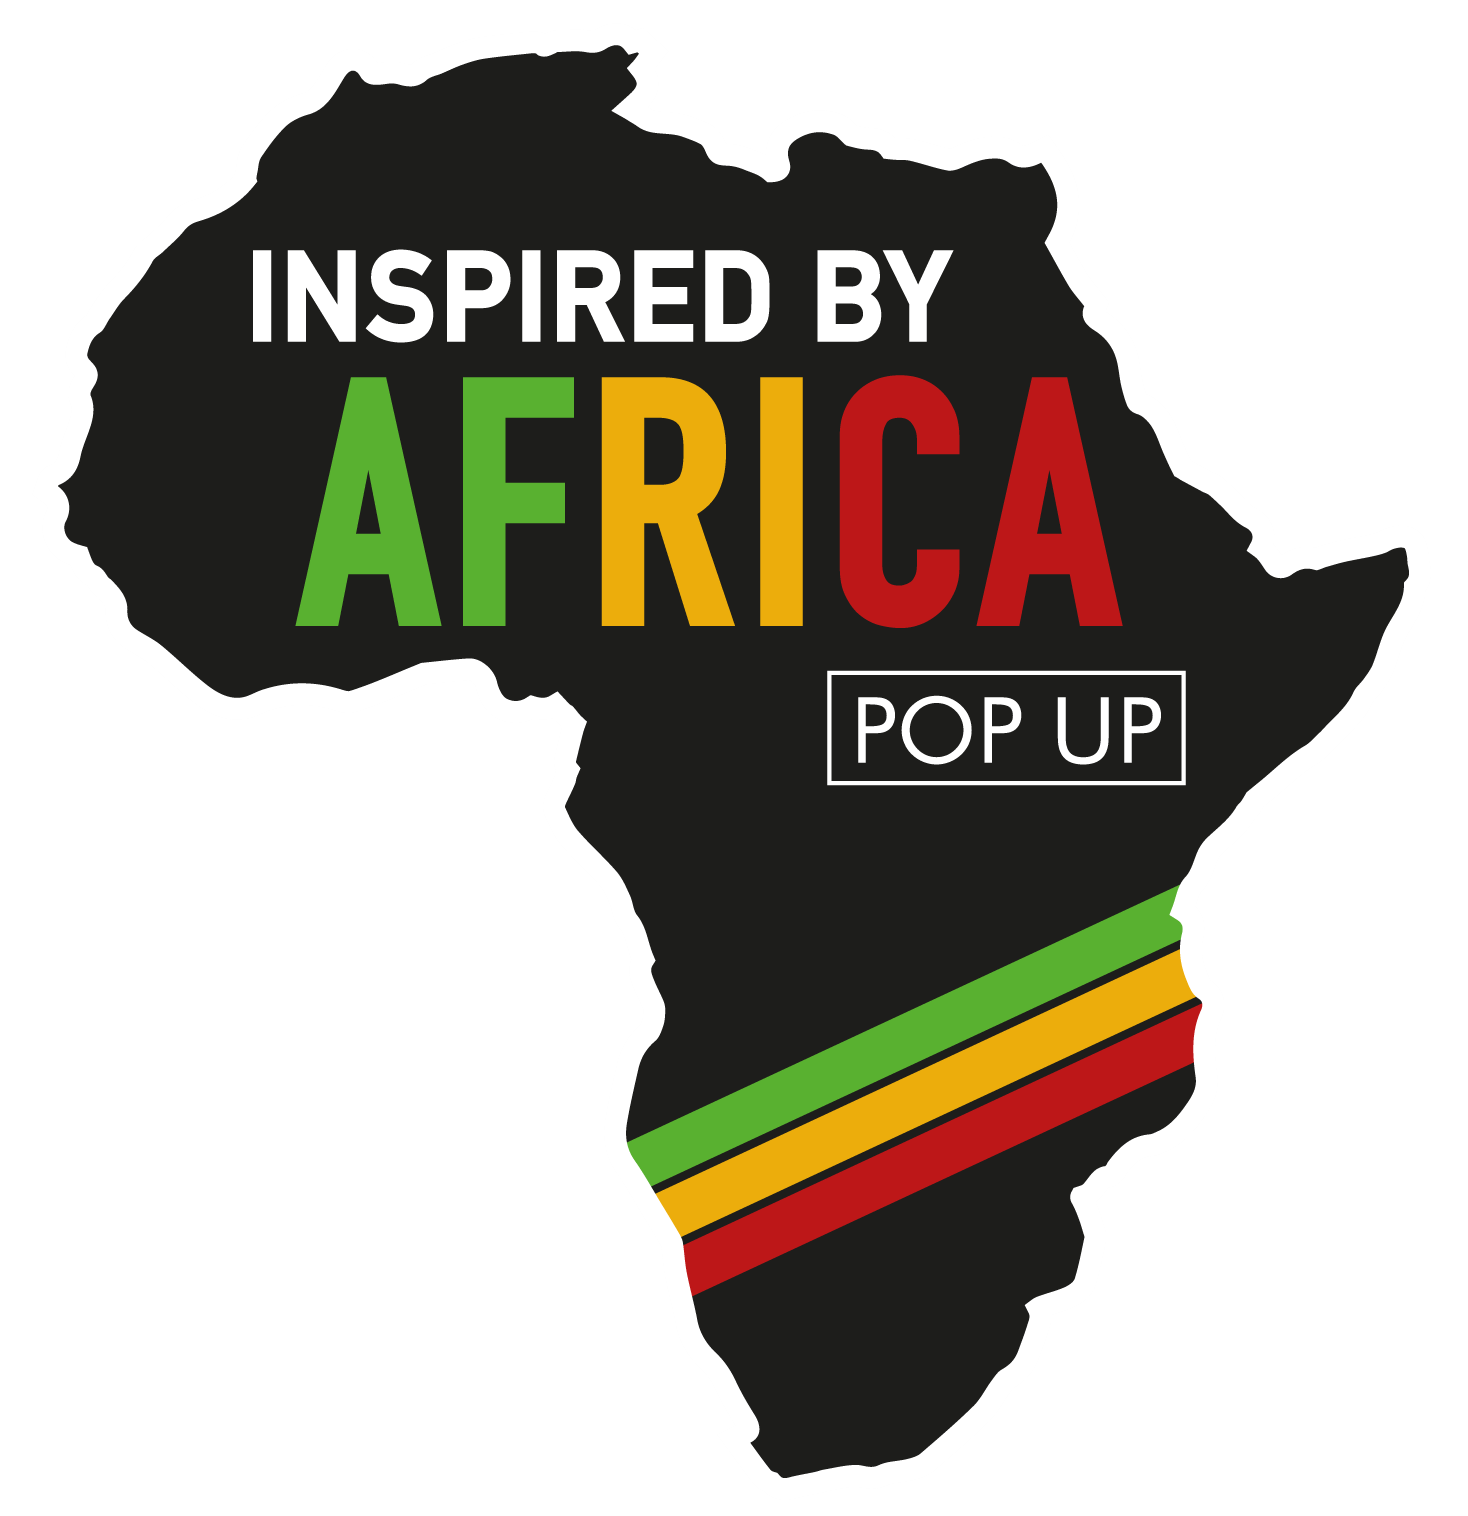 Inspired by Africa Pop Up